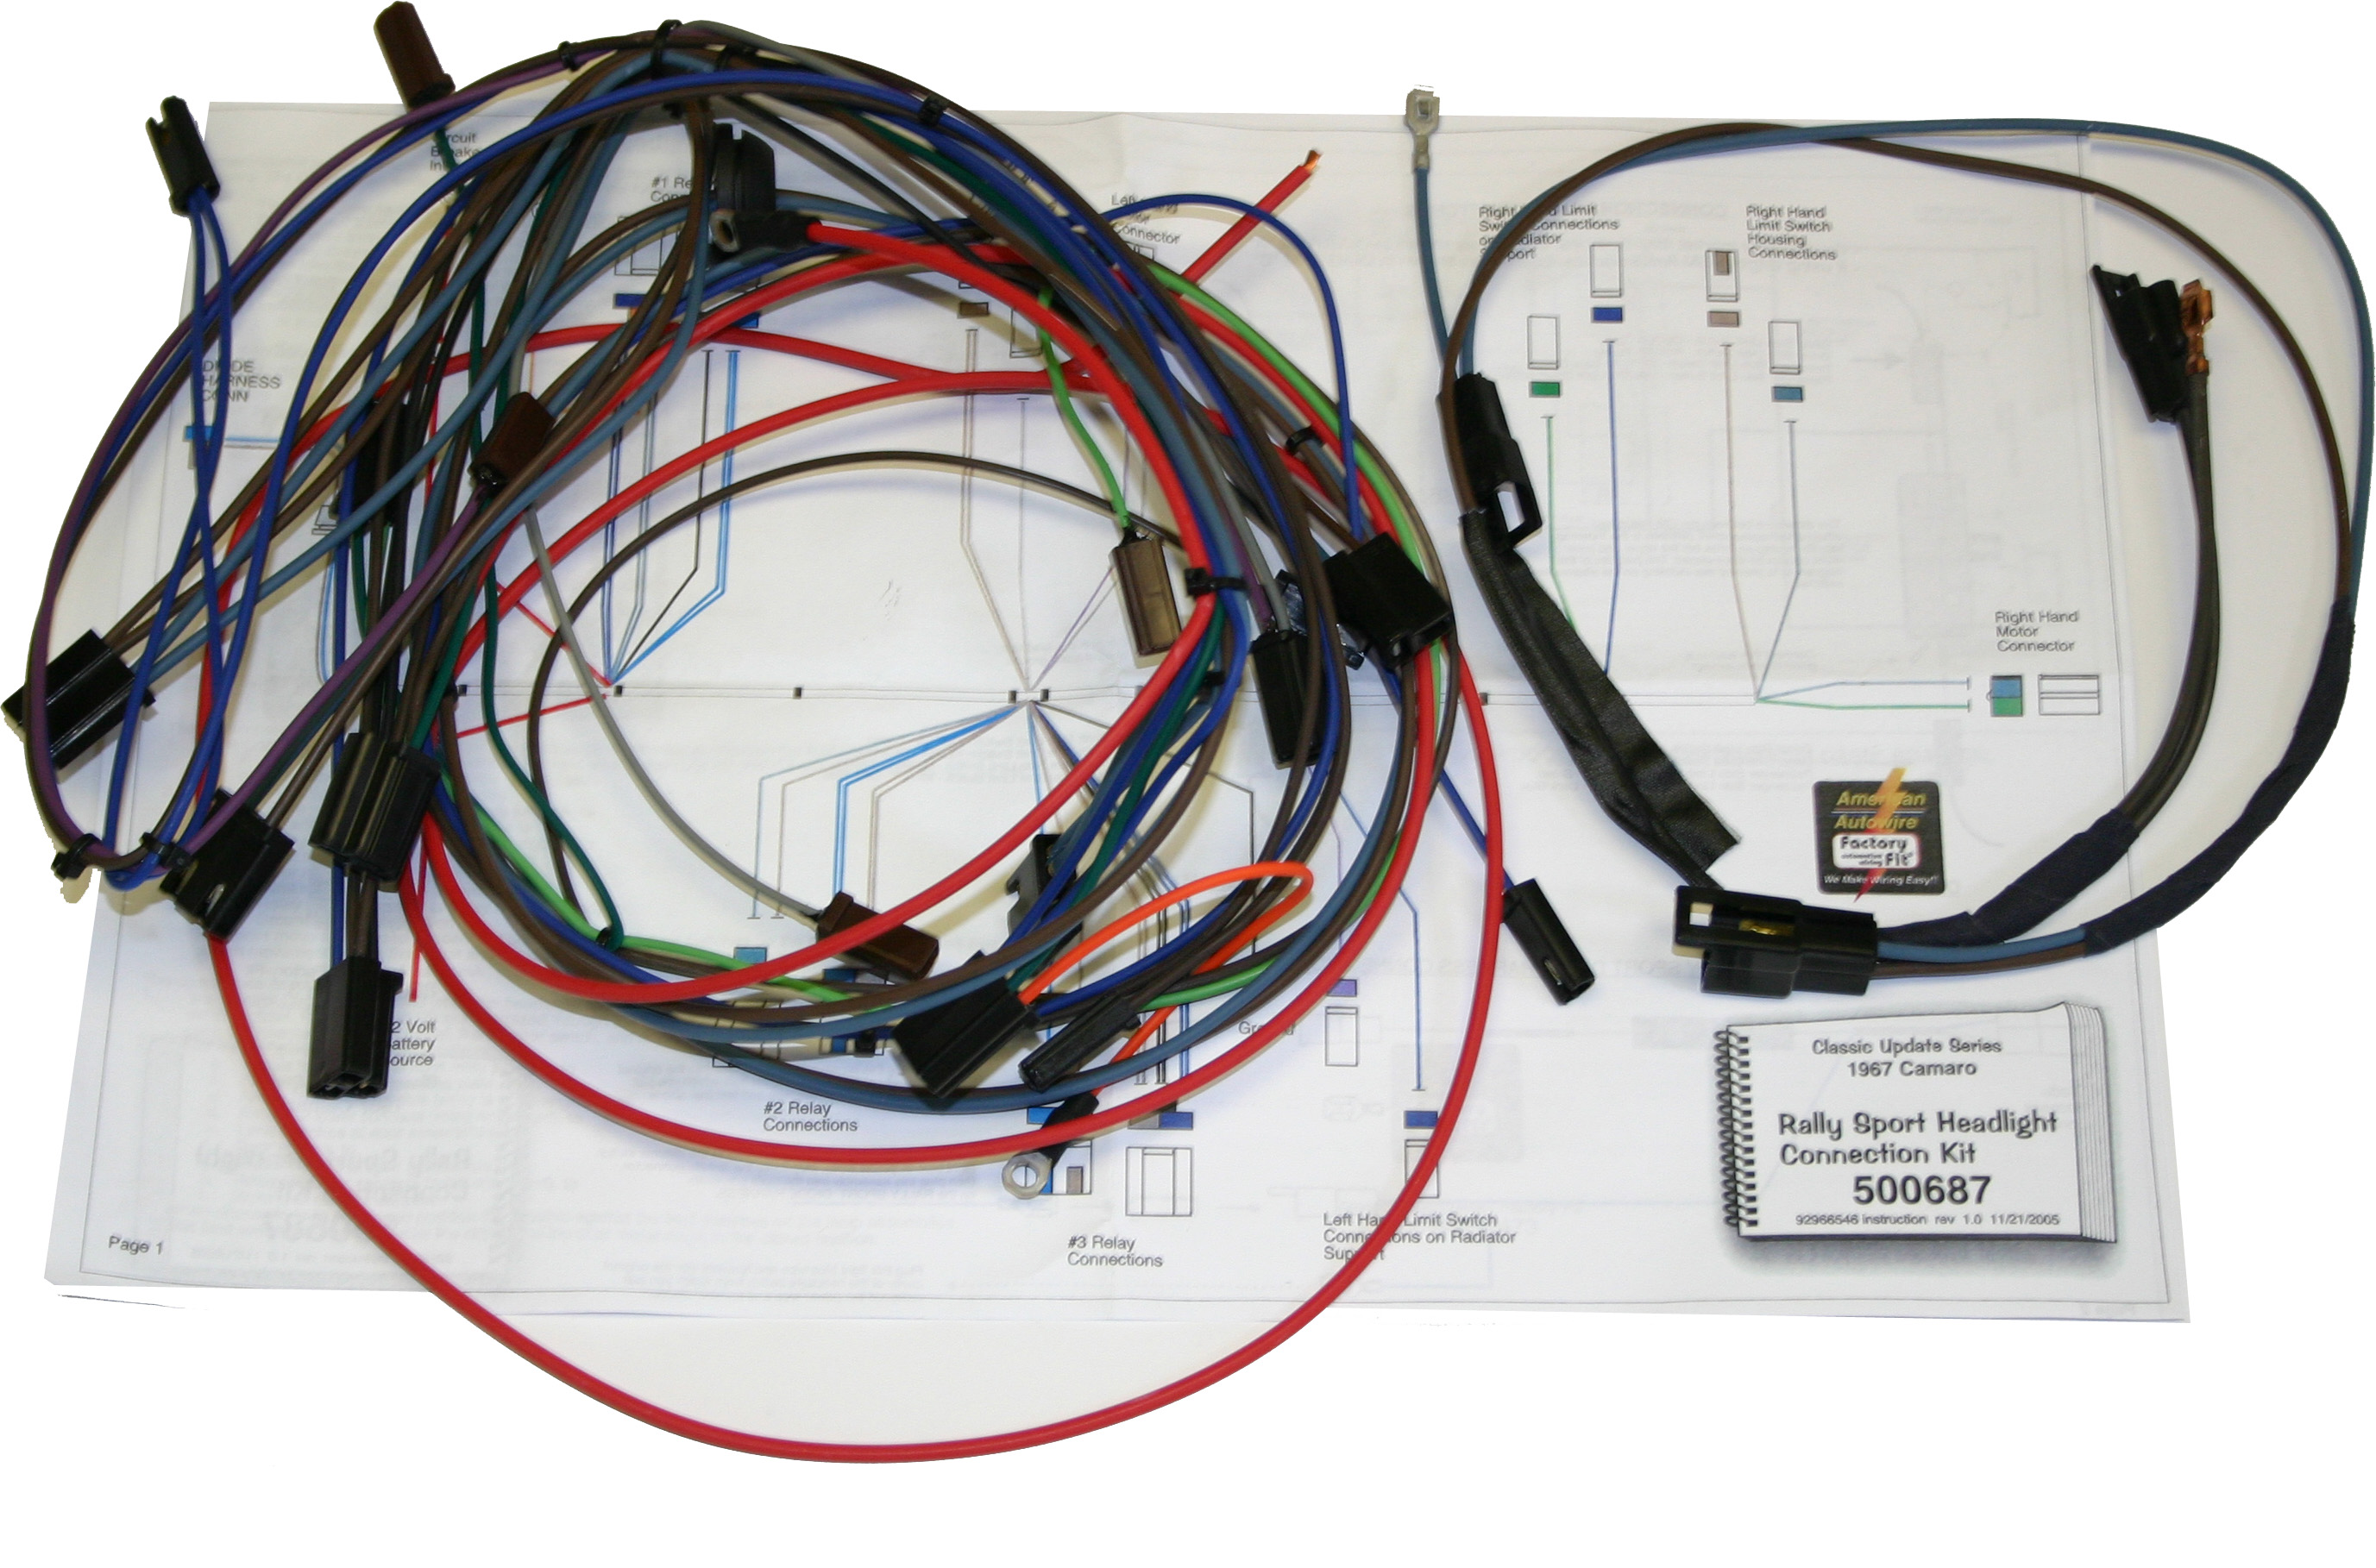 500773 67 68 camaro firebird classic update wiring harness 500661 camaro wiring harness at alyssarenee.co